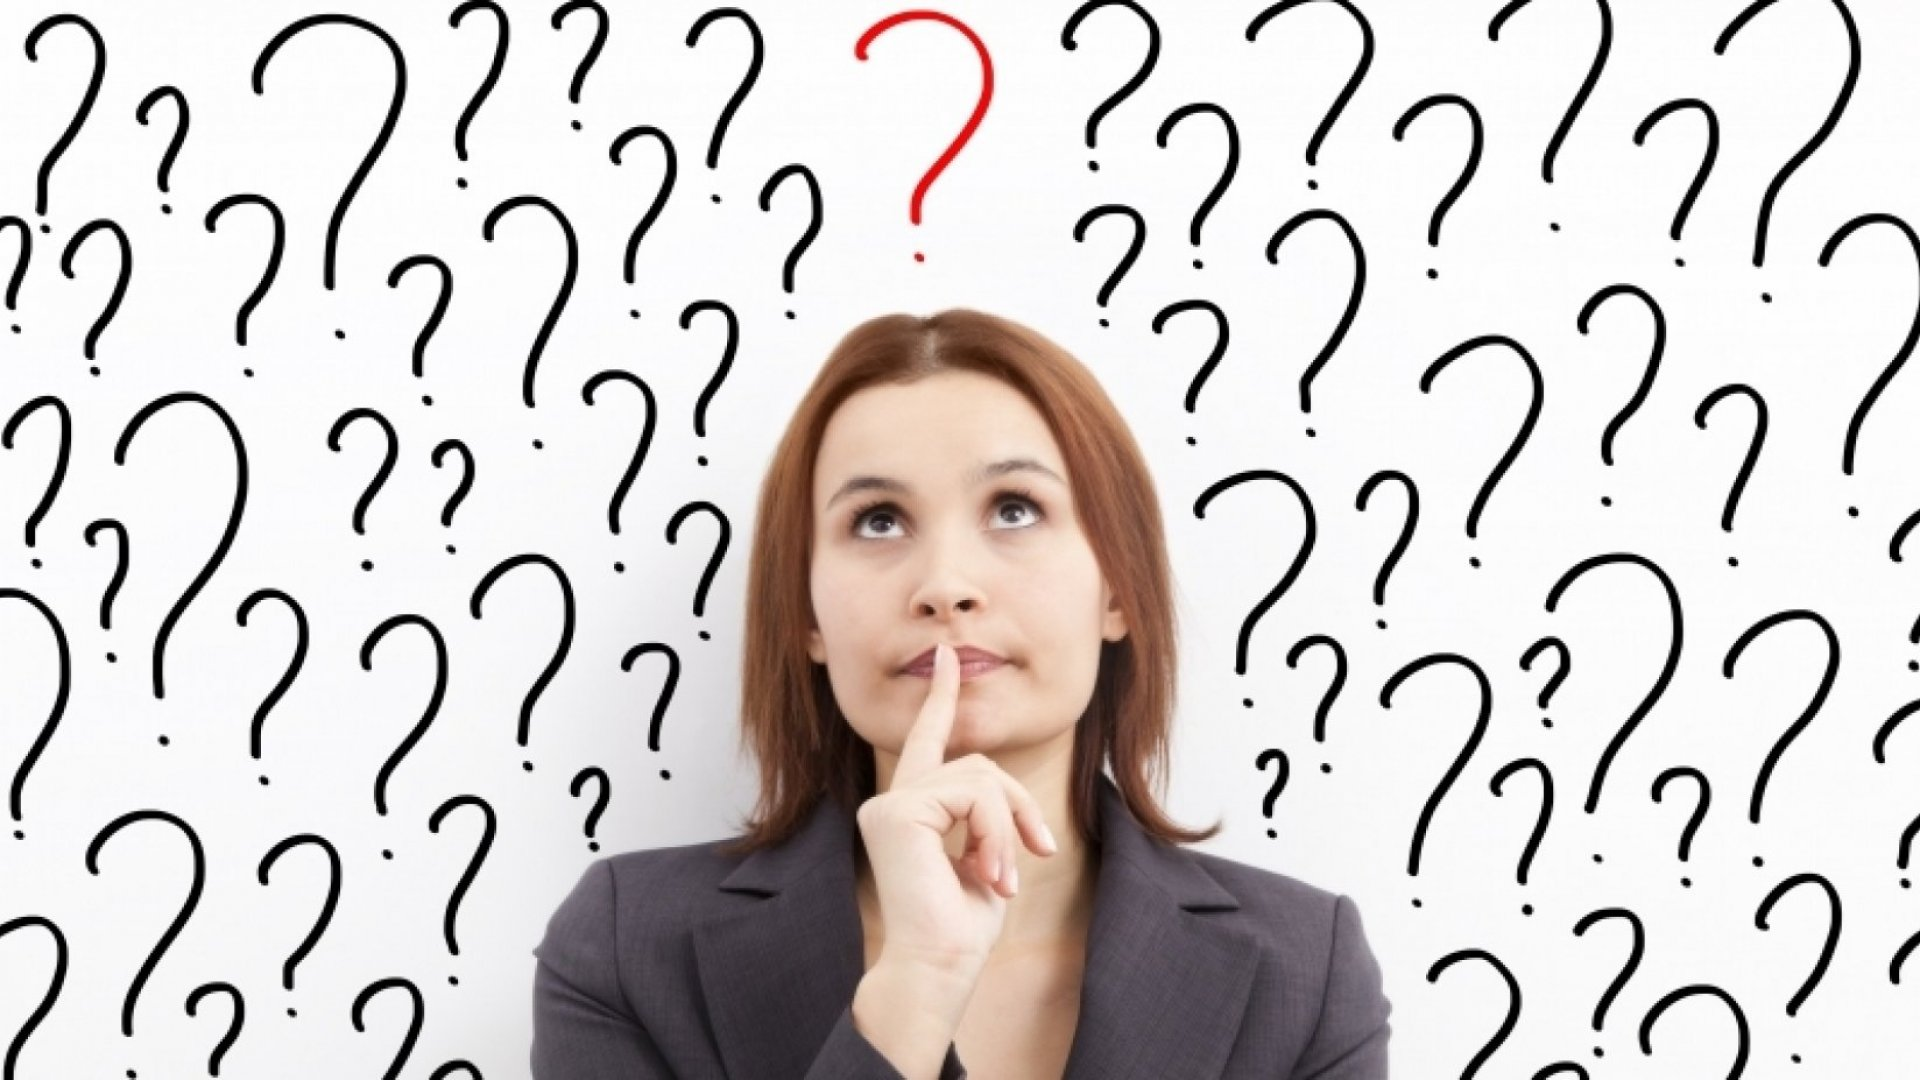 Top 10 Questions Investors Ask During Fundraising